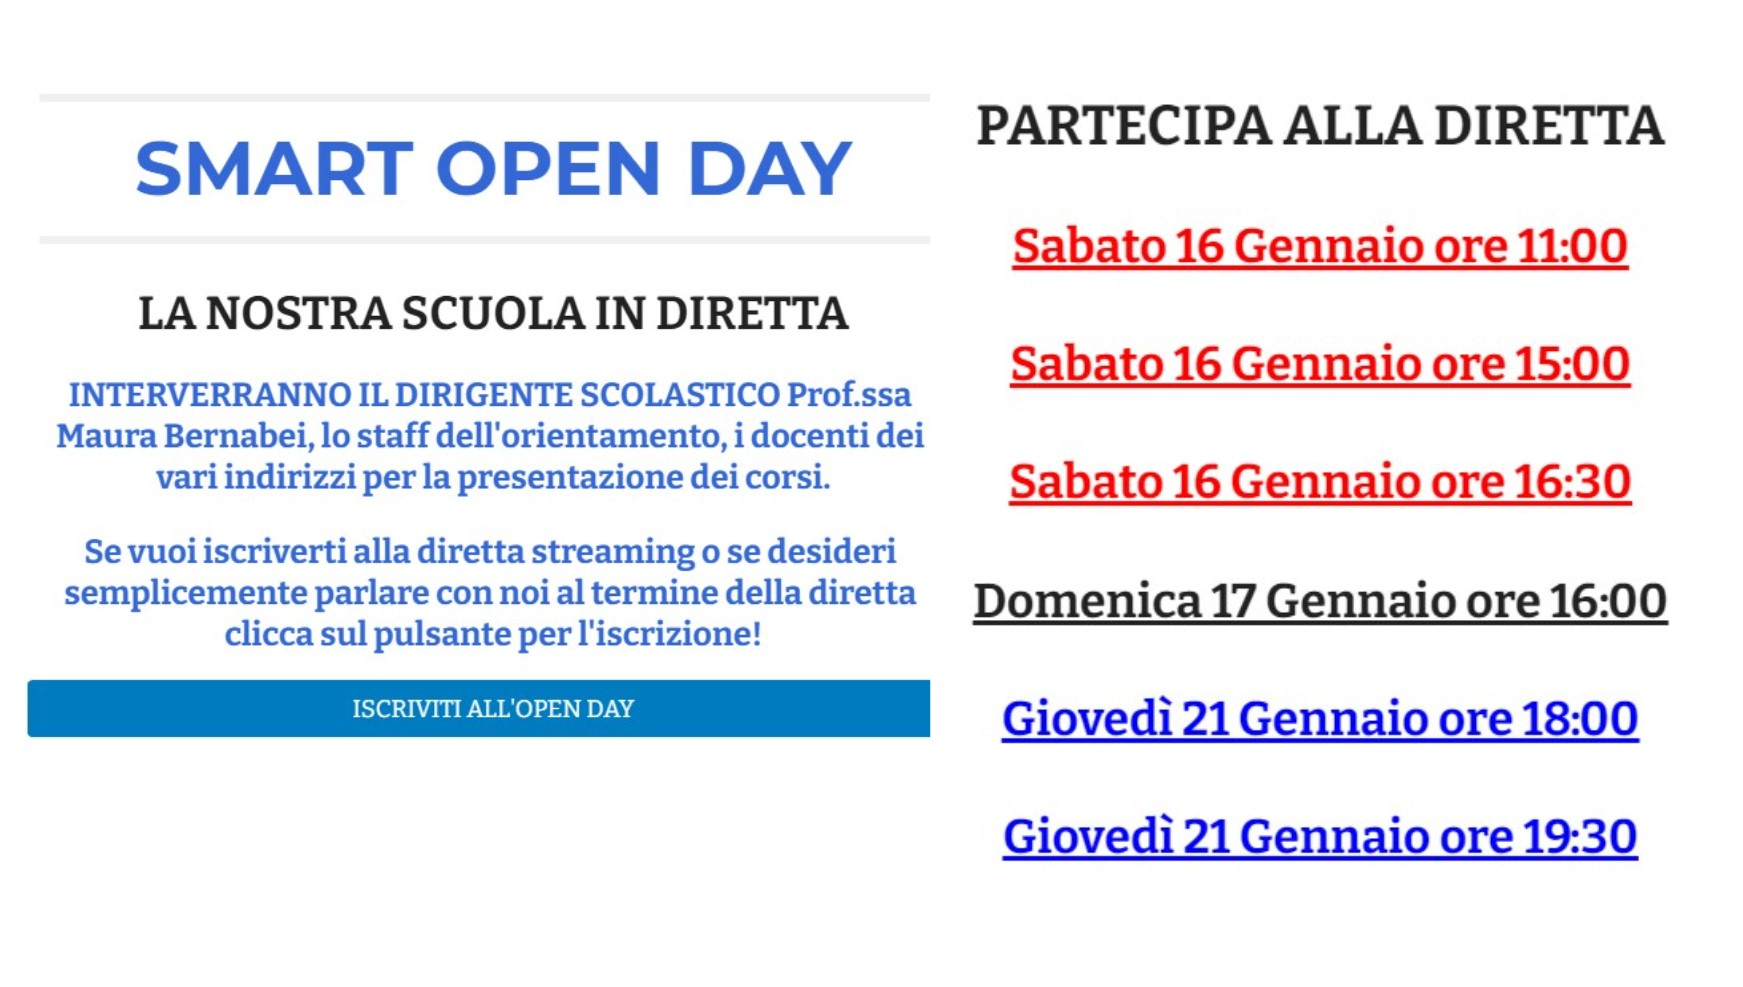 OPEN DAY 20/21 dirette